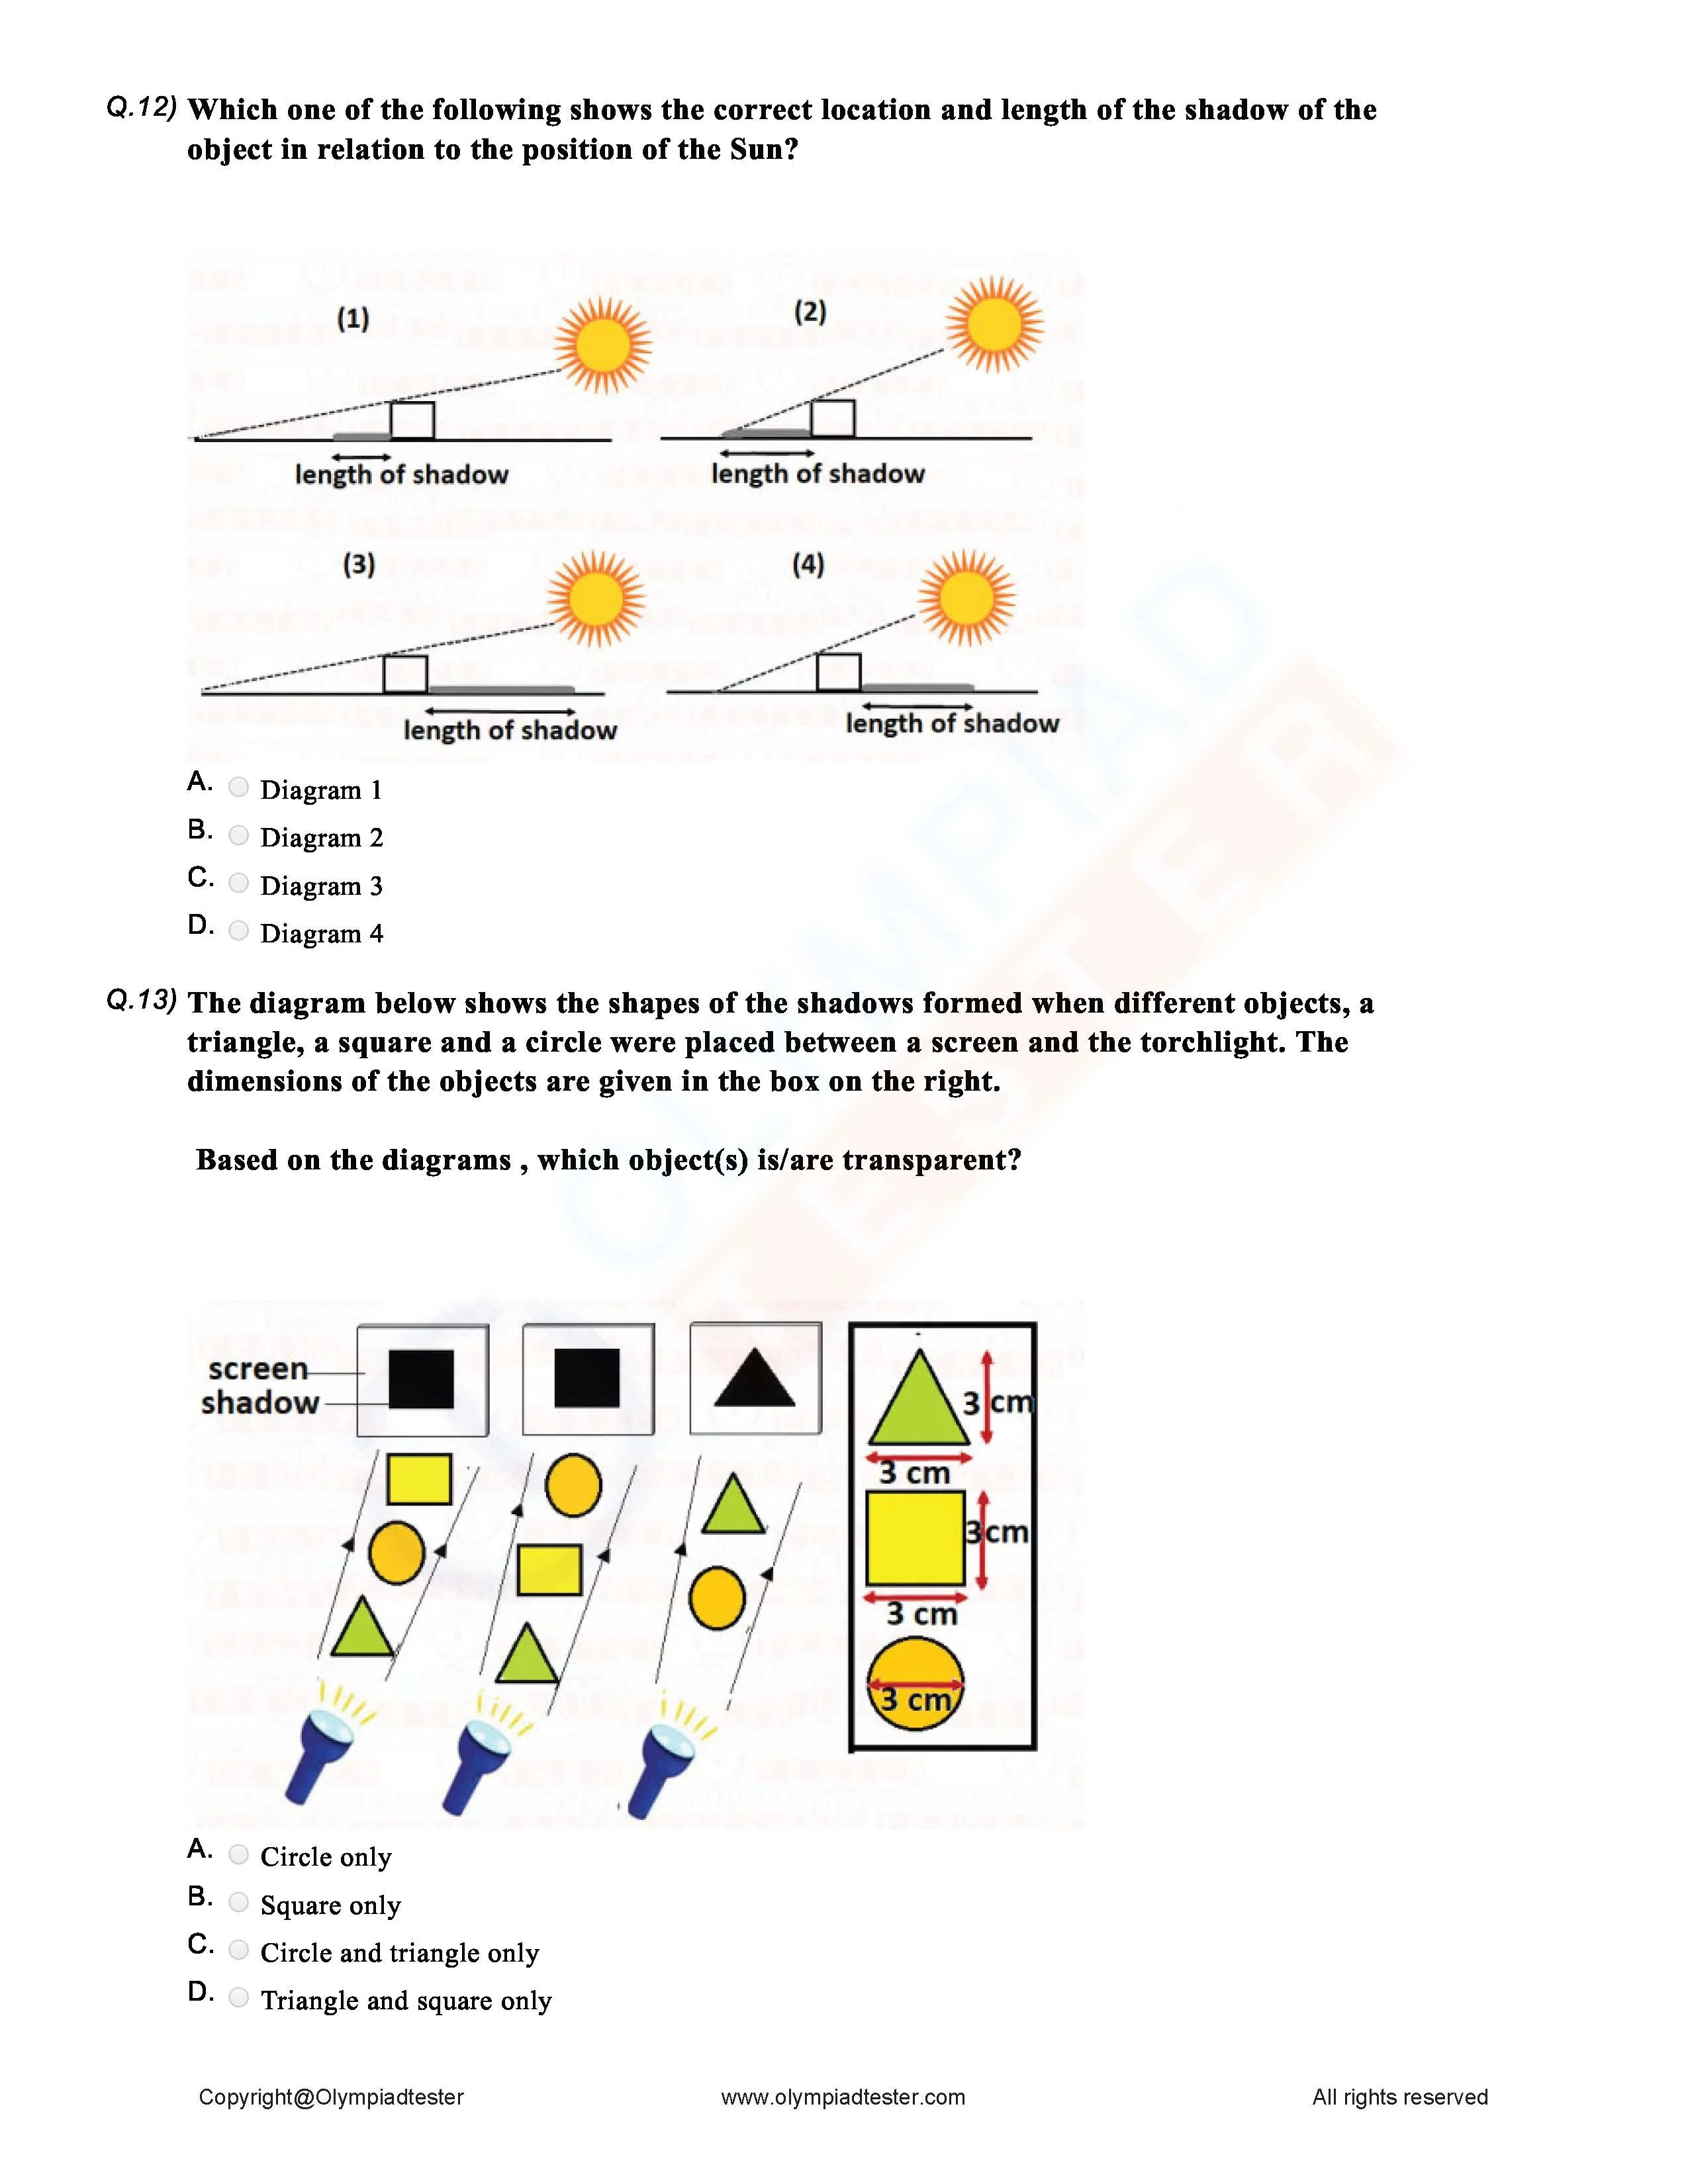 medium resolution of Class 6 Science Light Shadow and Reflections worksheet   Olympiadtester